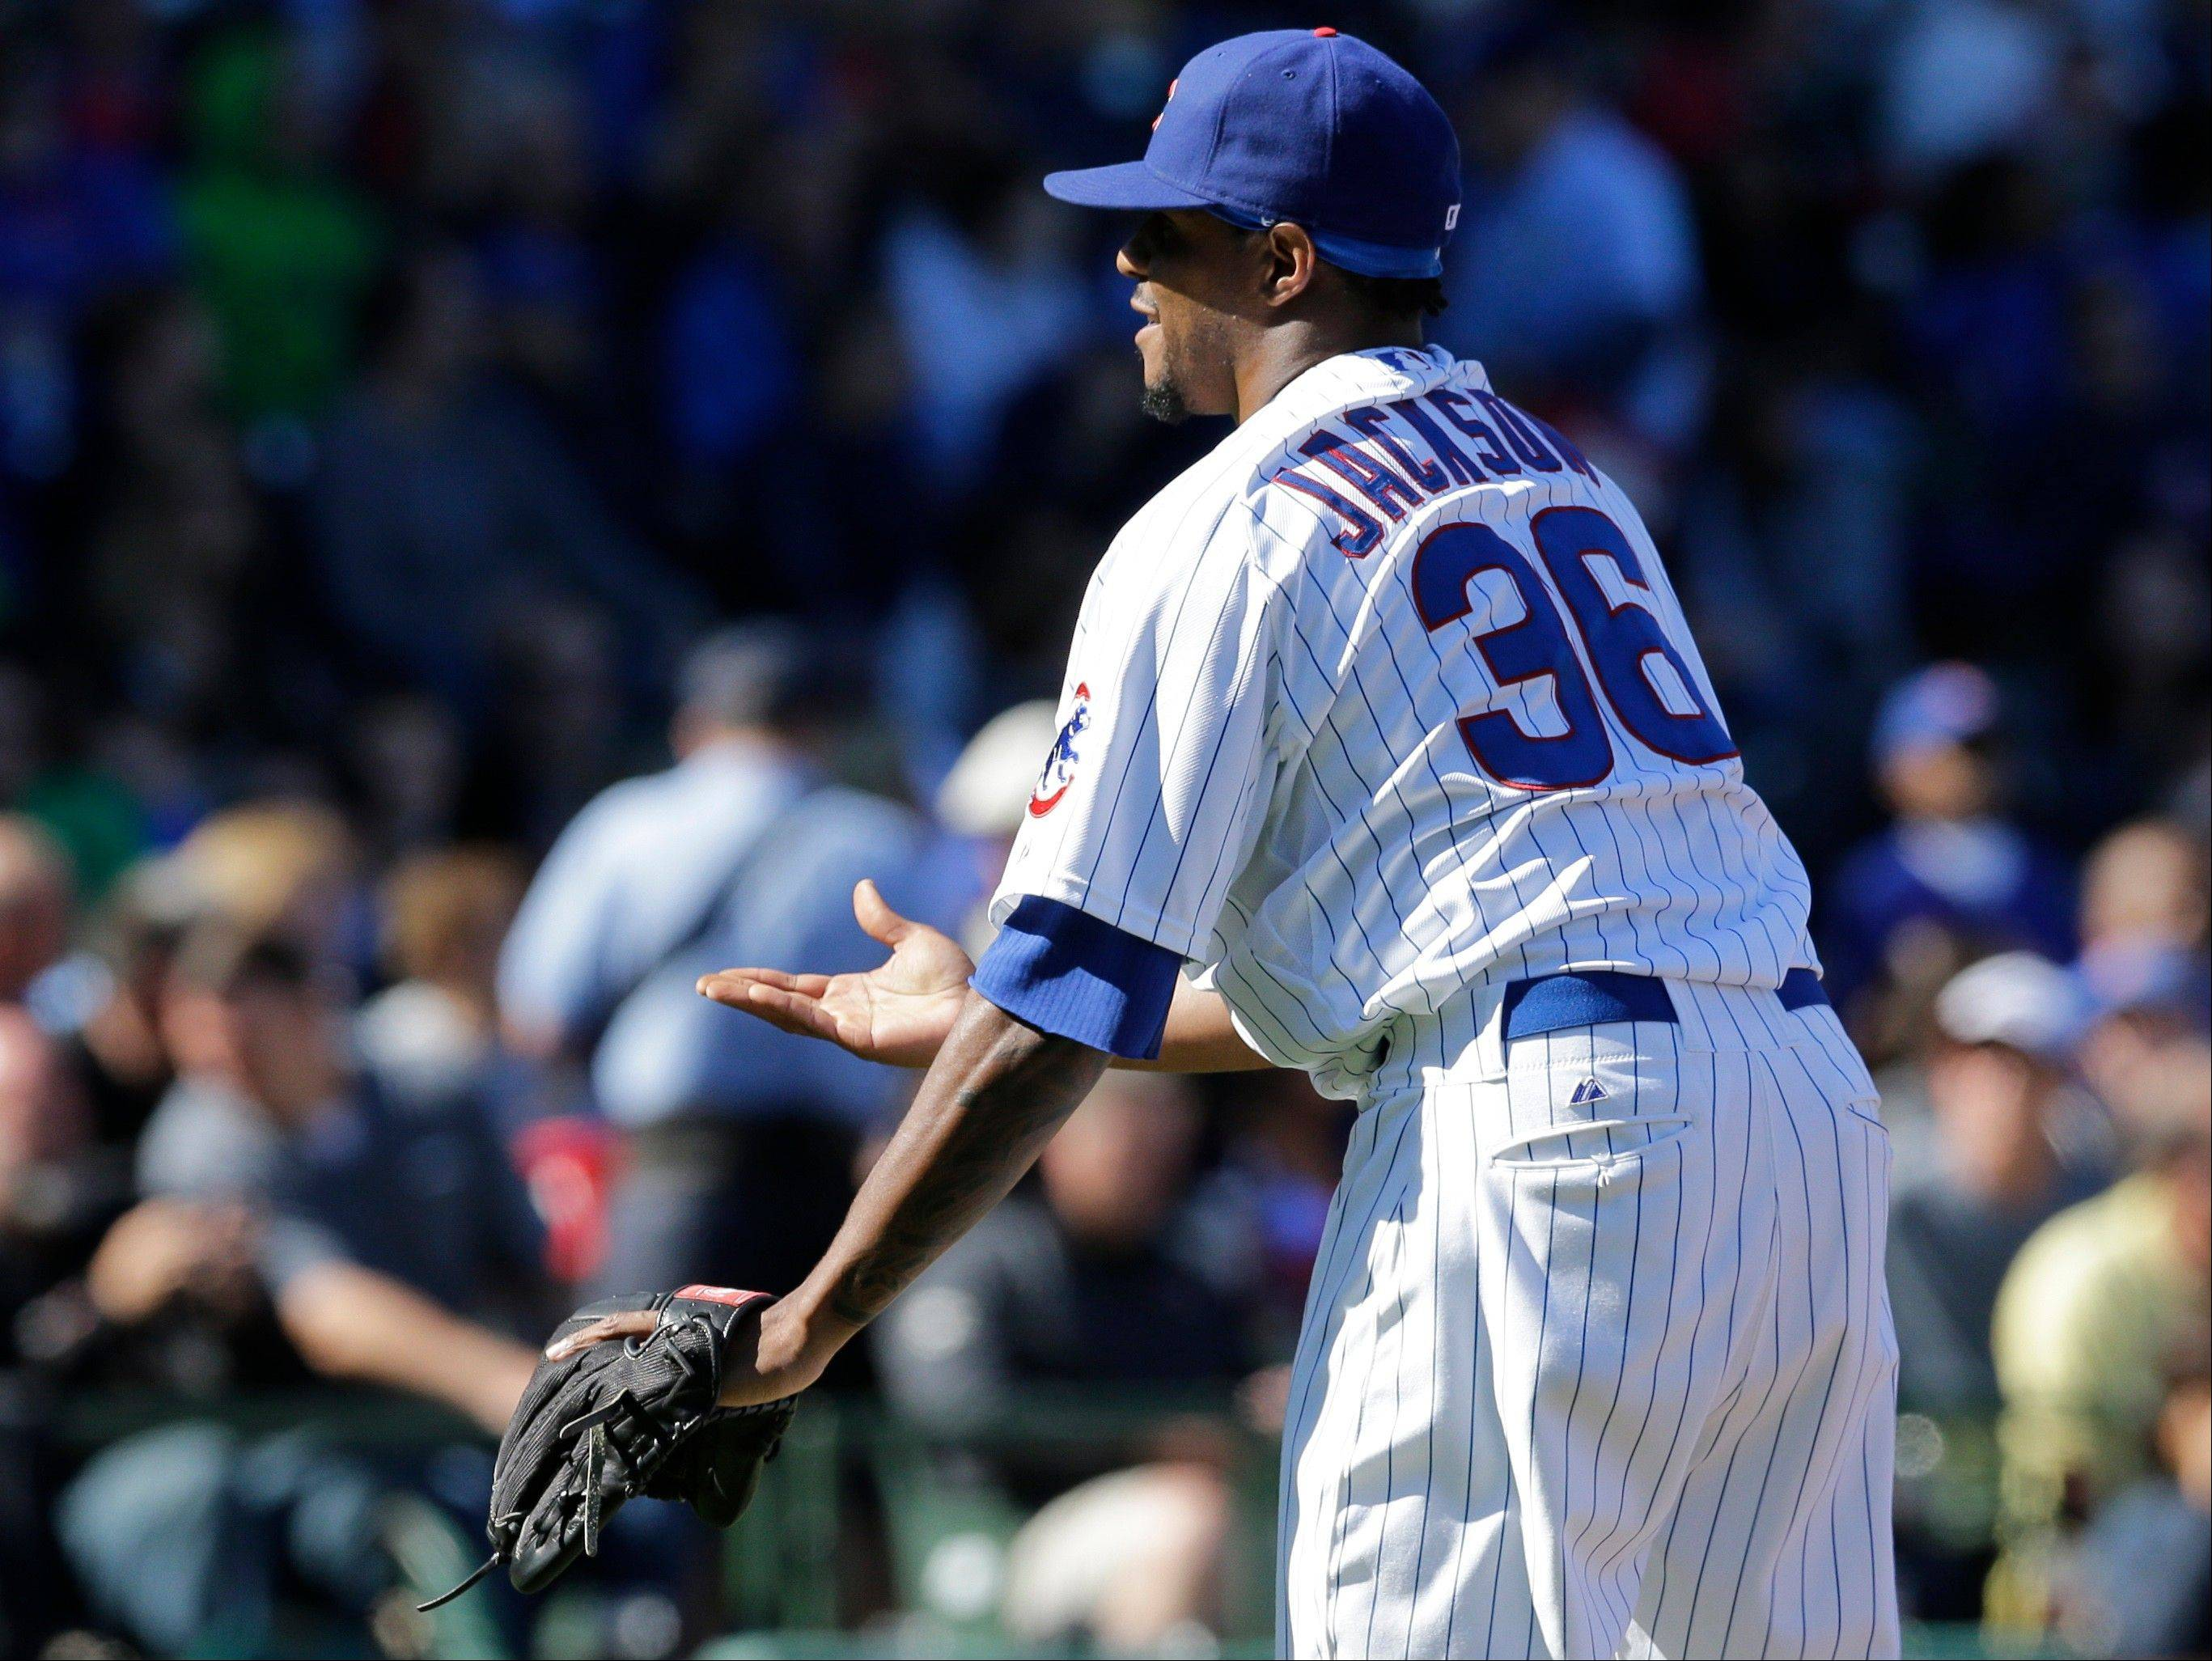 Cubs starter Edwin Jackson reacts to catcher Dioner Navarro after the Braves' Andrelton Simmons hit a solo home in the fourth inning Sunday at Wrigley Field.